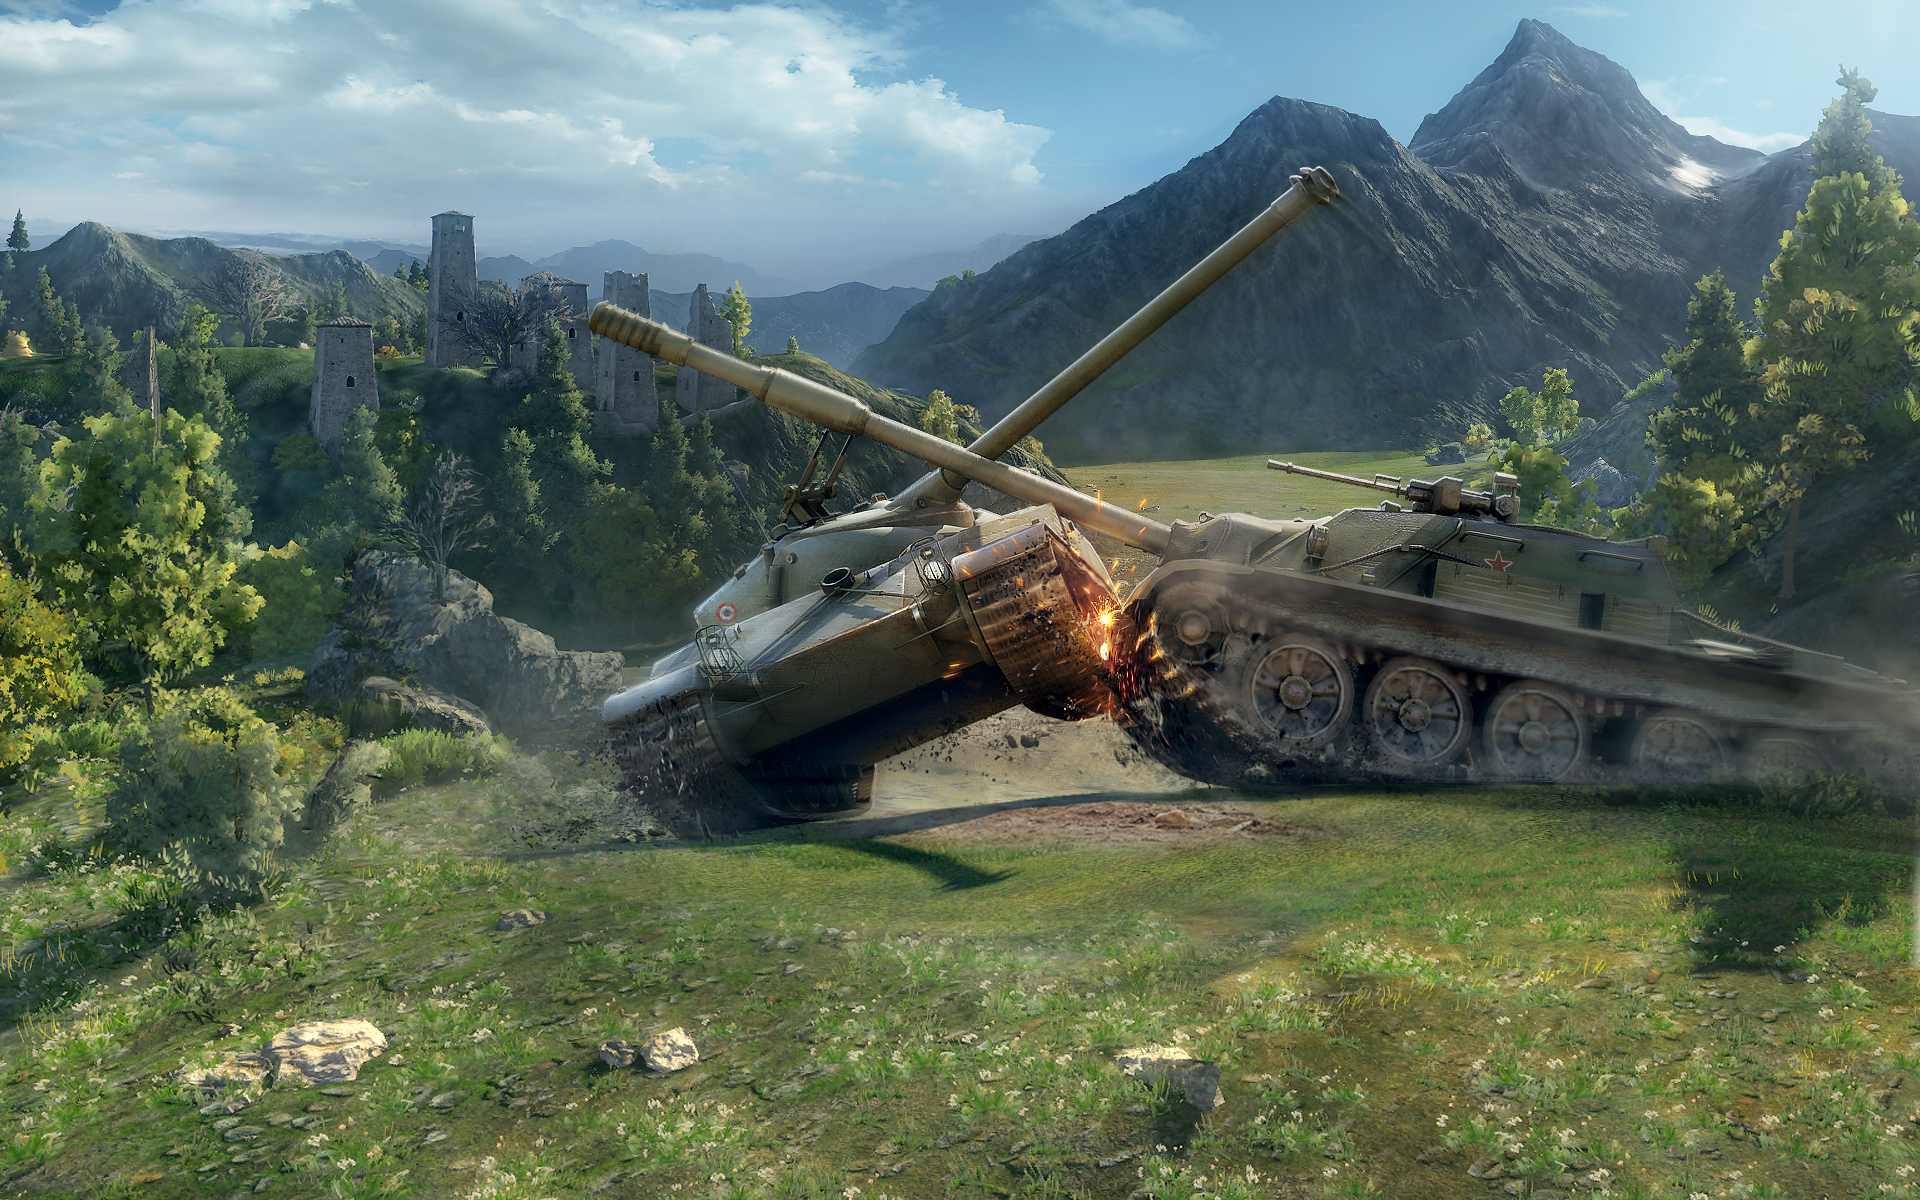 Wargaming CEO says that it's technologically ready for VR